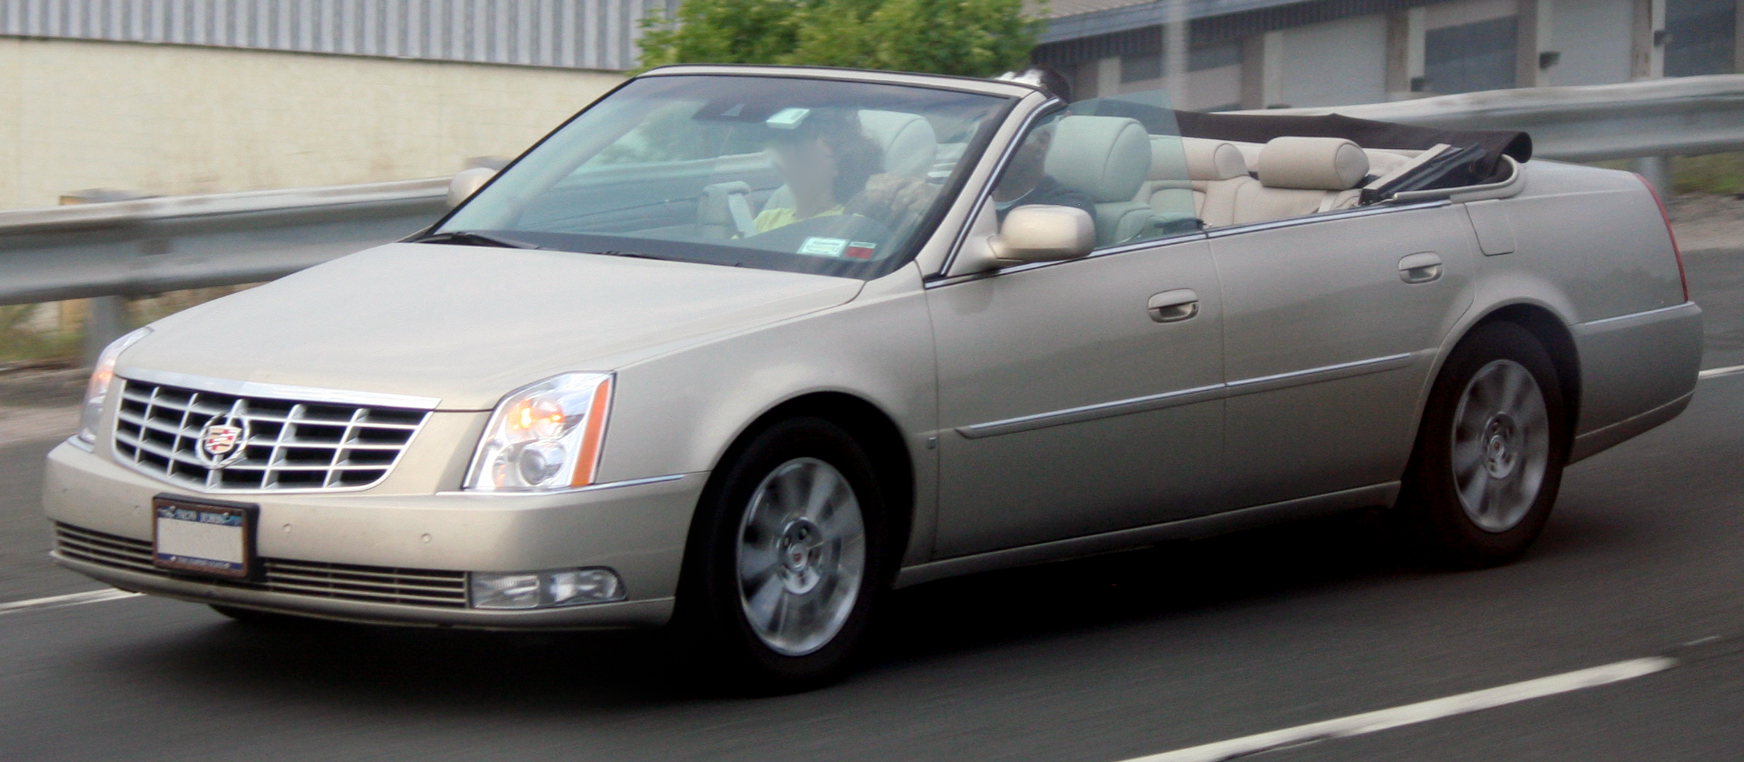 File:Cadillac DTS custom convertible.jpg - Wikimedia Commons